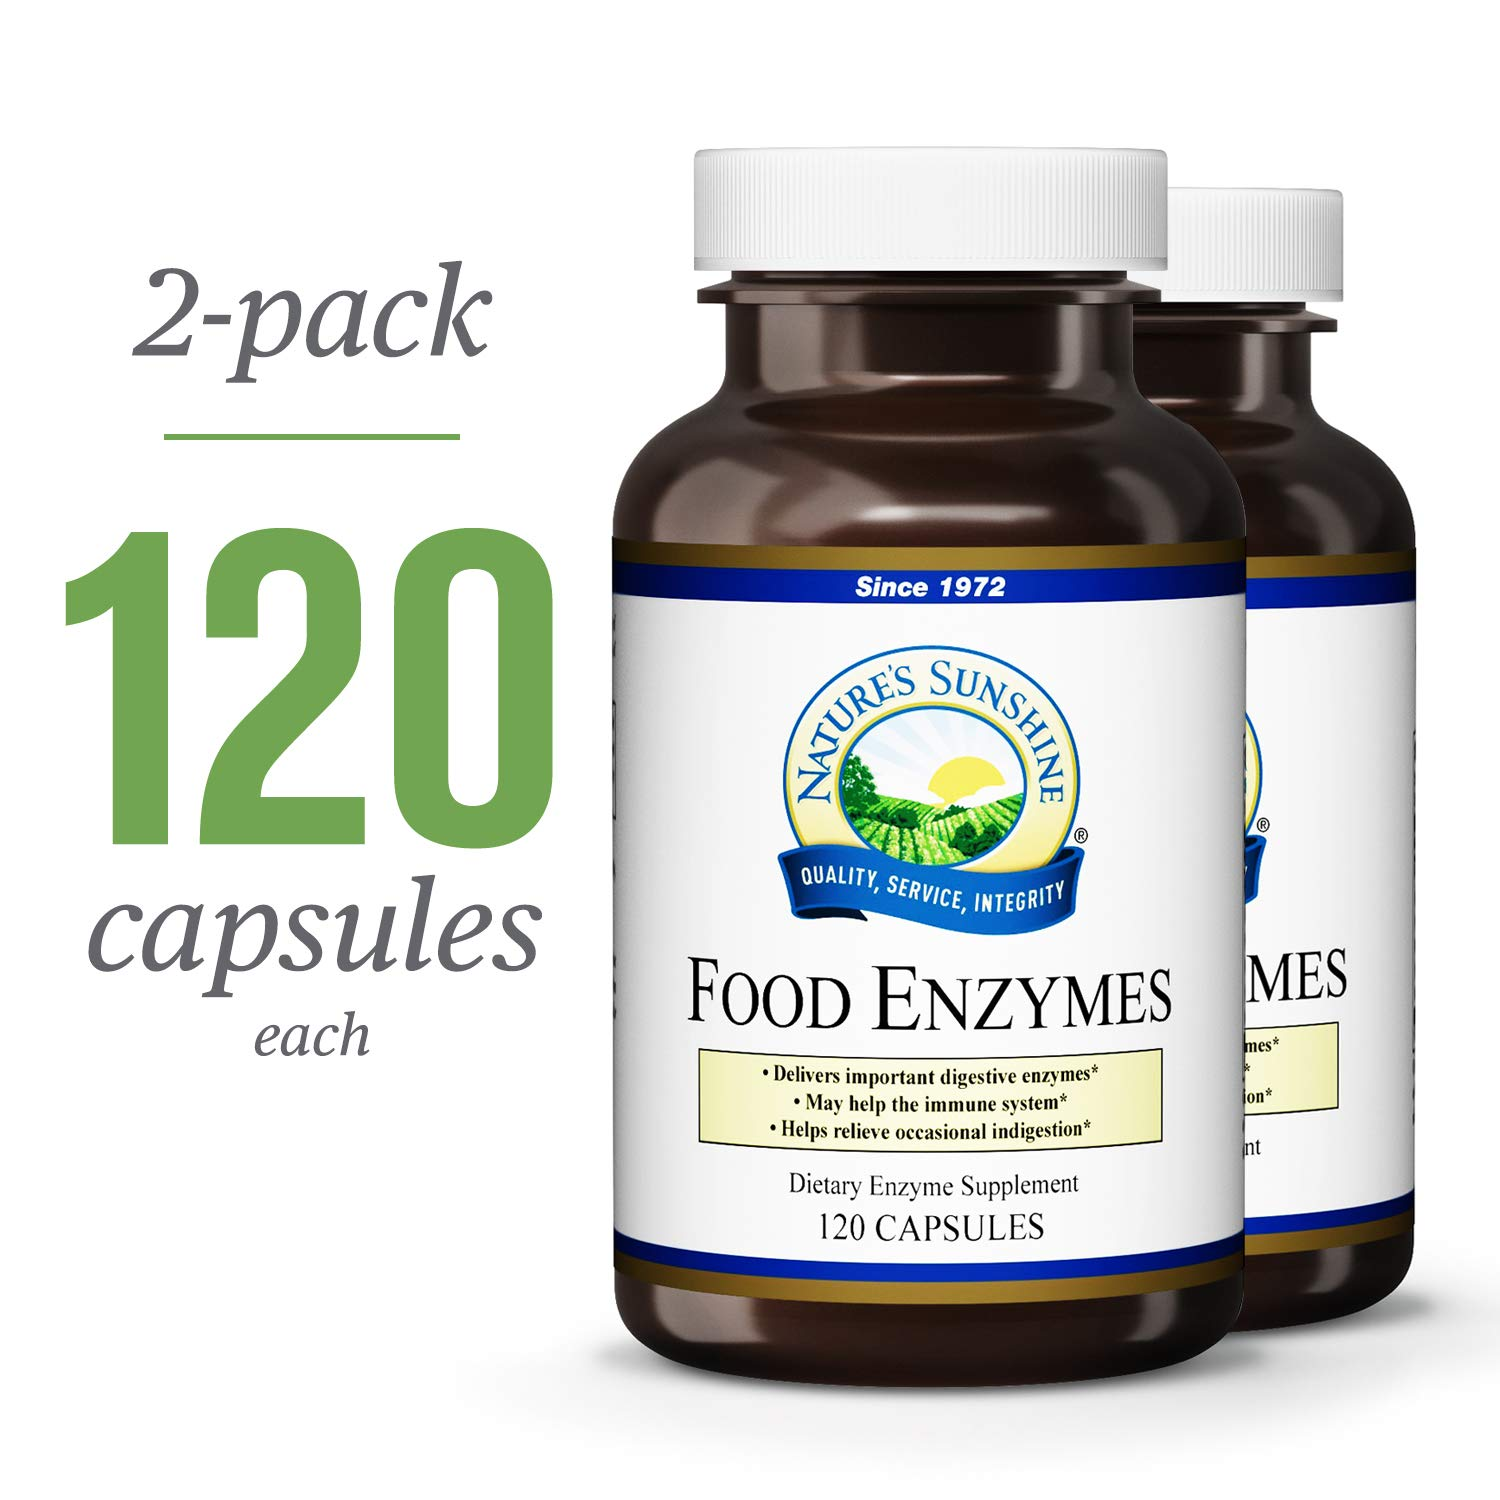 Nature's Sunshine Food Enzymes, 120 Capsules, 2 Pack | Digestive Enzymes with Betaine HCL Support The Digestive System and Provide Occasional Indigestion Relief